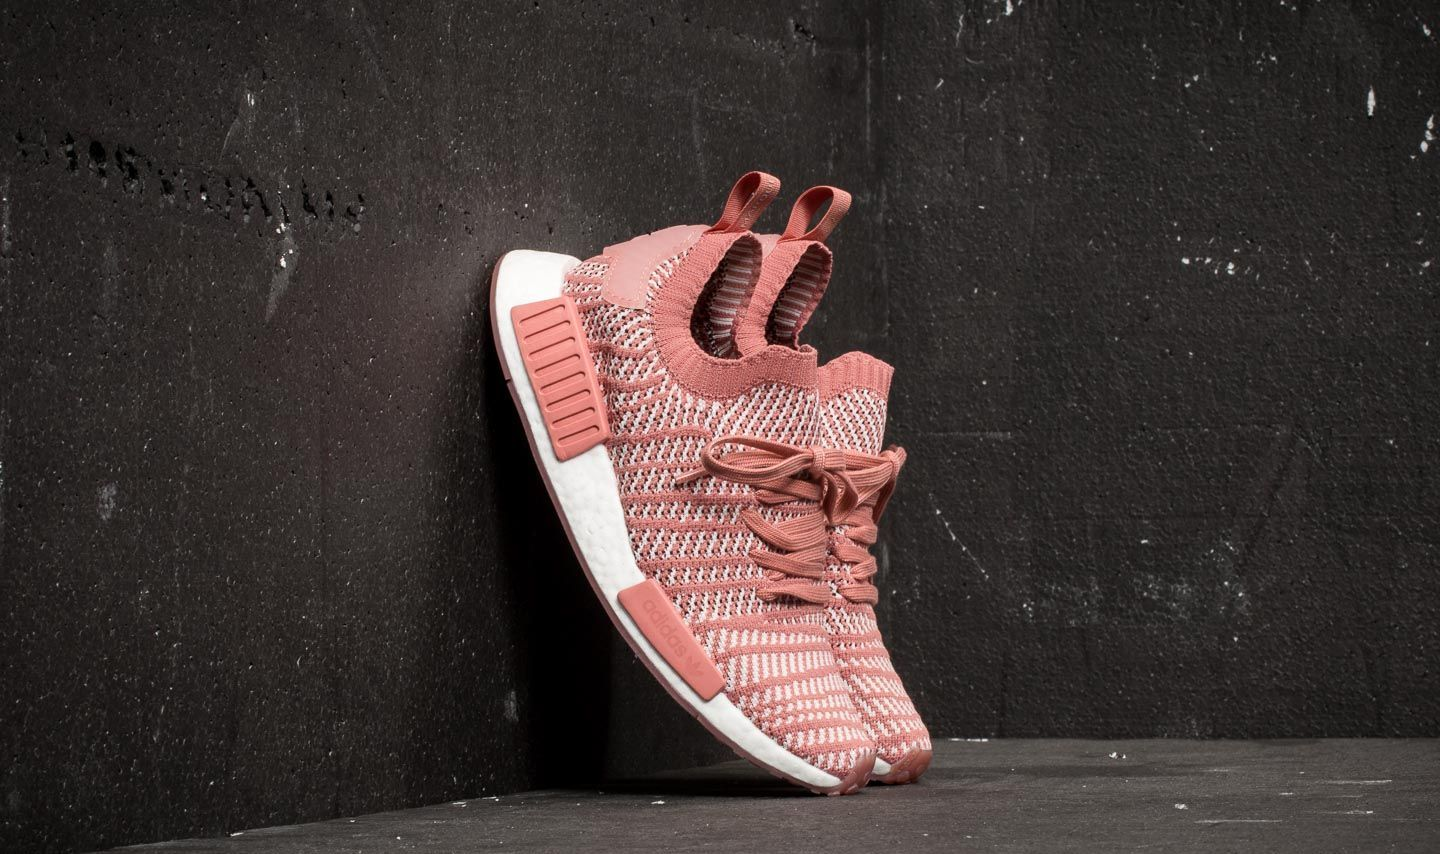 separation shoes 57db4 173e3 adidas NMD R1 STLT Primeknit W. Ash Pink  Orchid Tint  ...